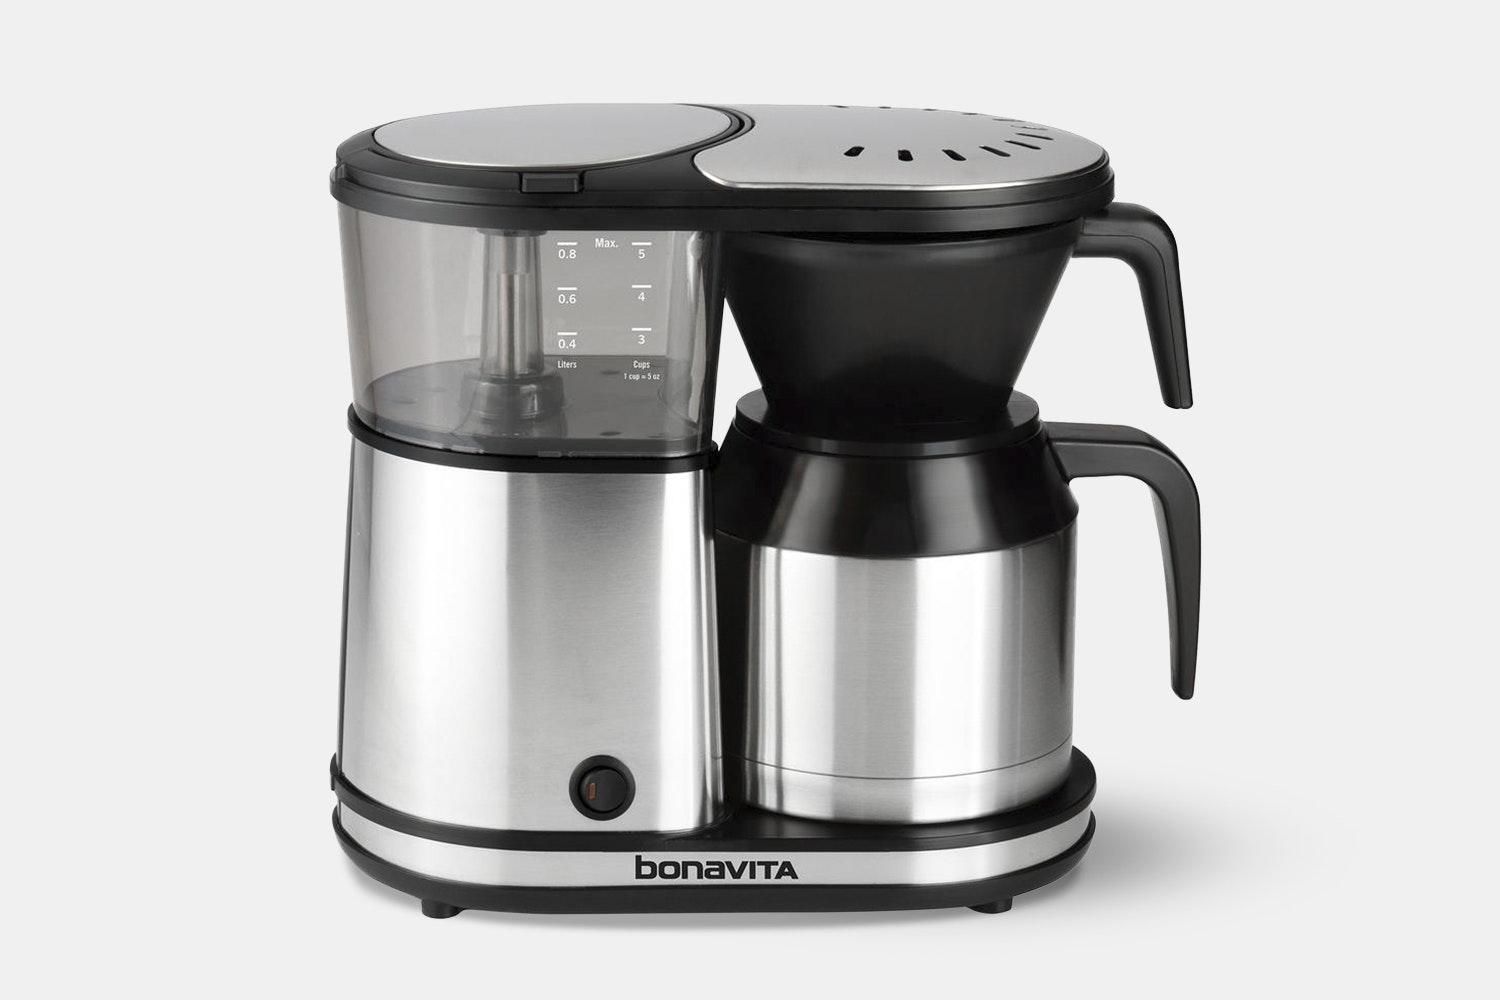 Bonavita 5-Cup Stainless Steel Coffee Brewer